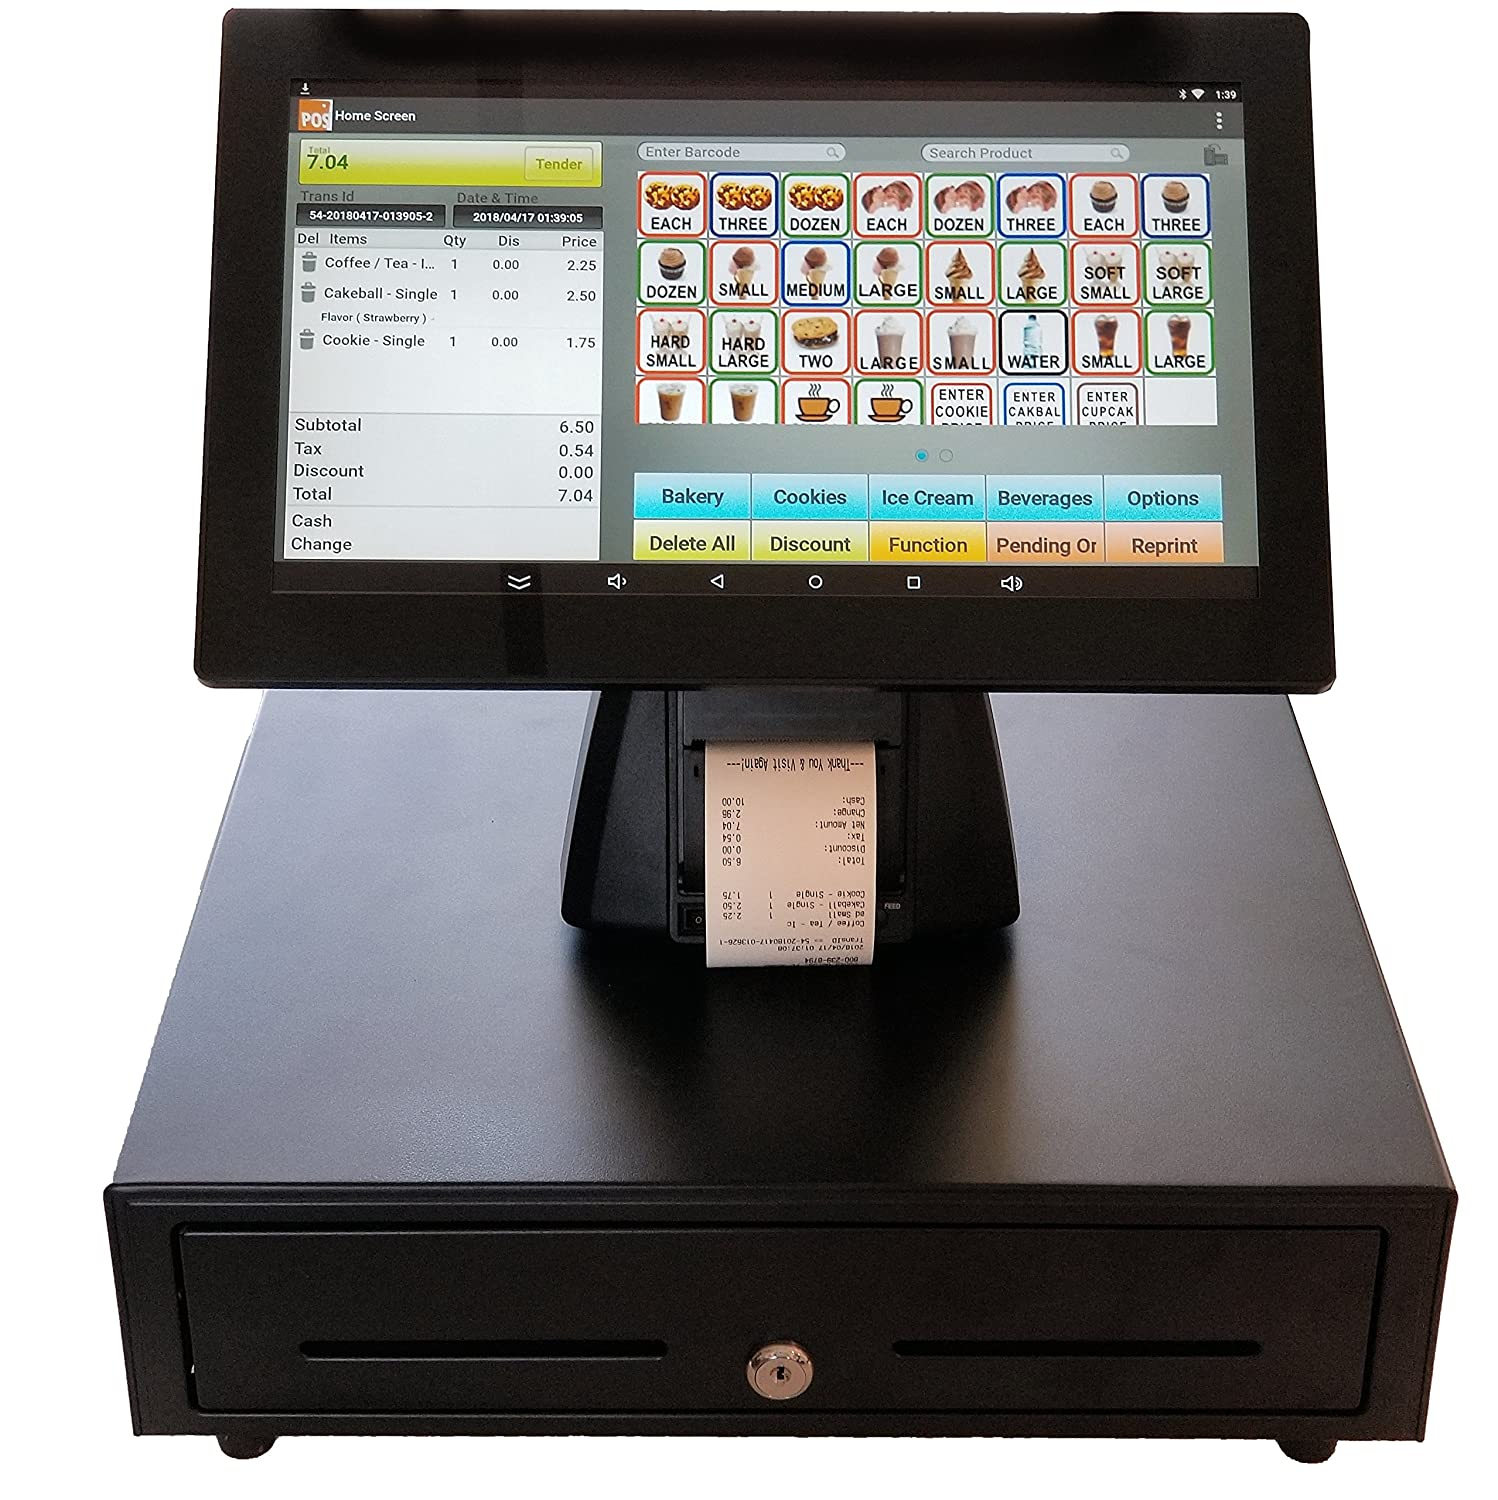 Restaurant Point Of Sale Pos System With 14 Screen This